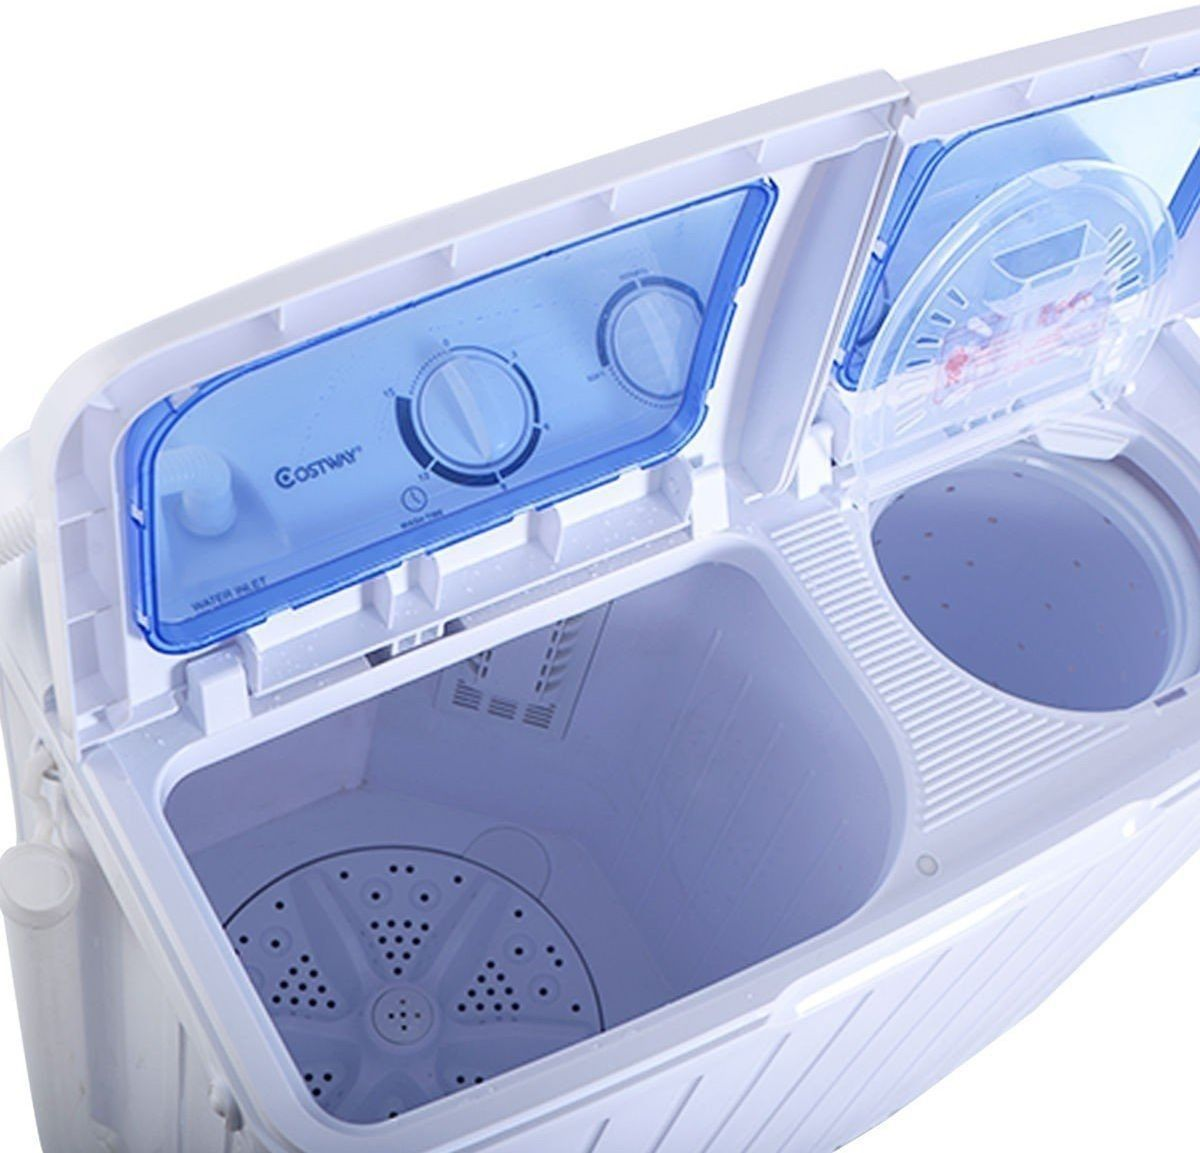 Portable Clothes Washer And Dryer ~ Portable washing machine washer and clothes dryer top